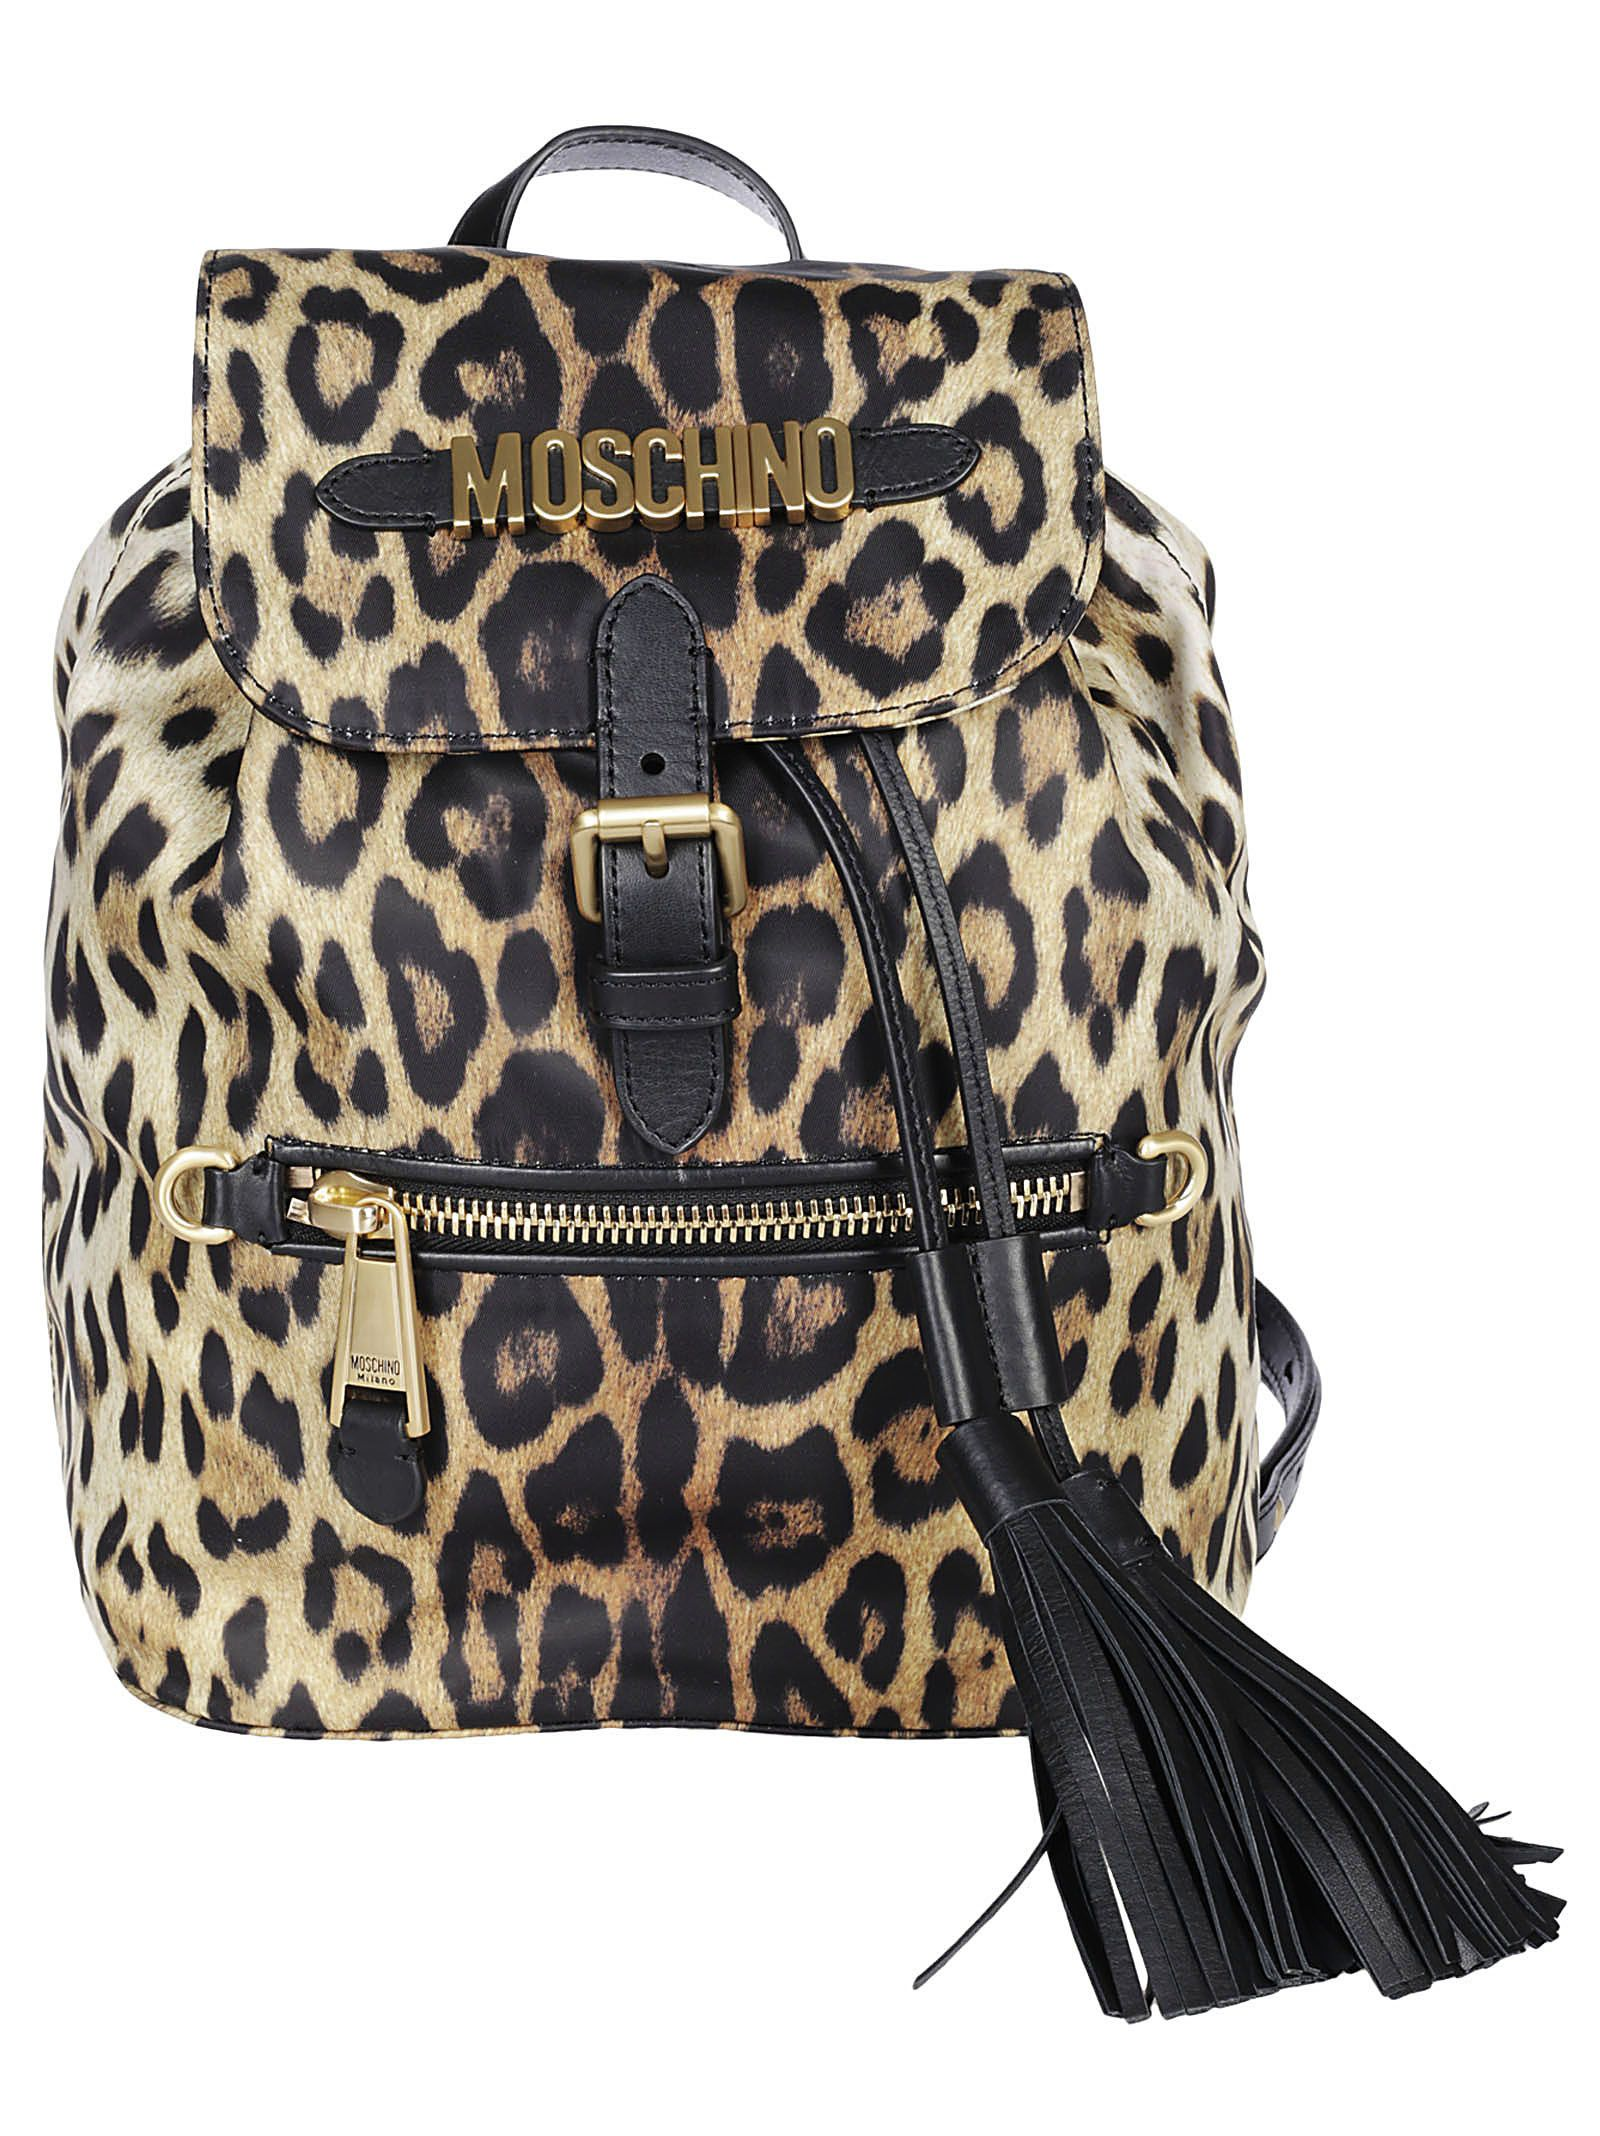 Moschino Moschino Leopard Print Backpack - Multicolor - 10813634 ... 932745979e3fa